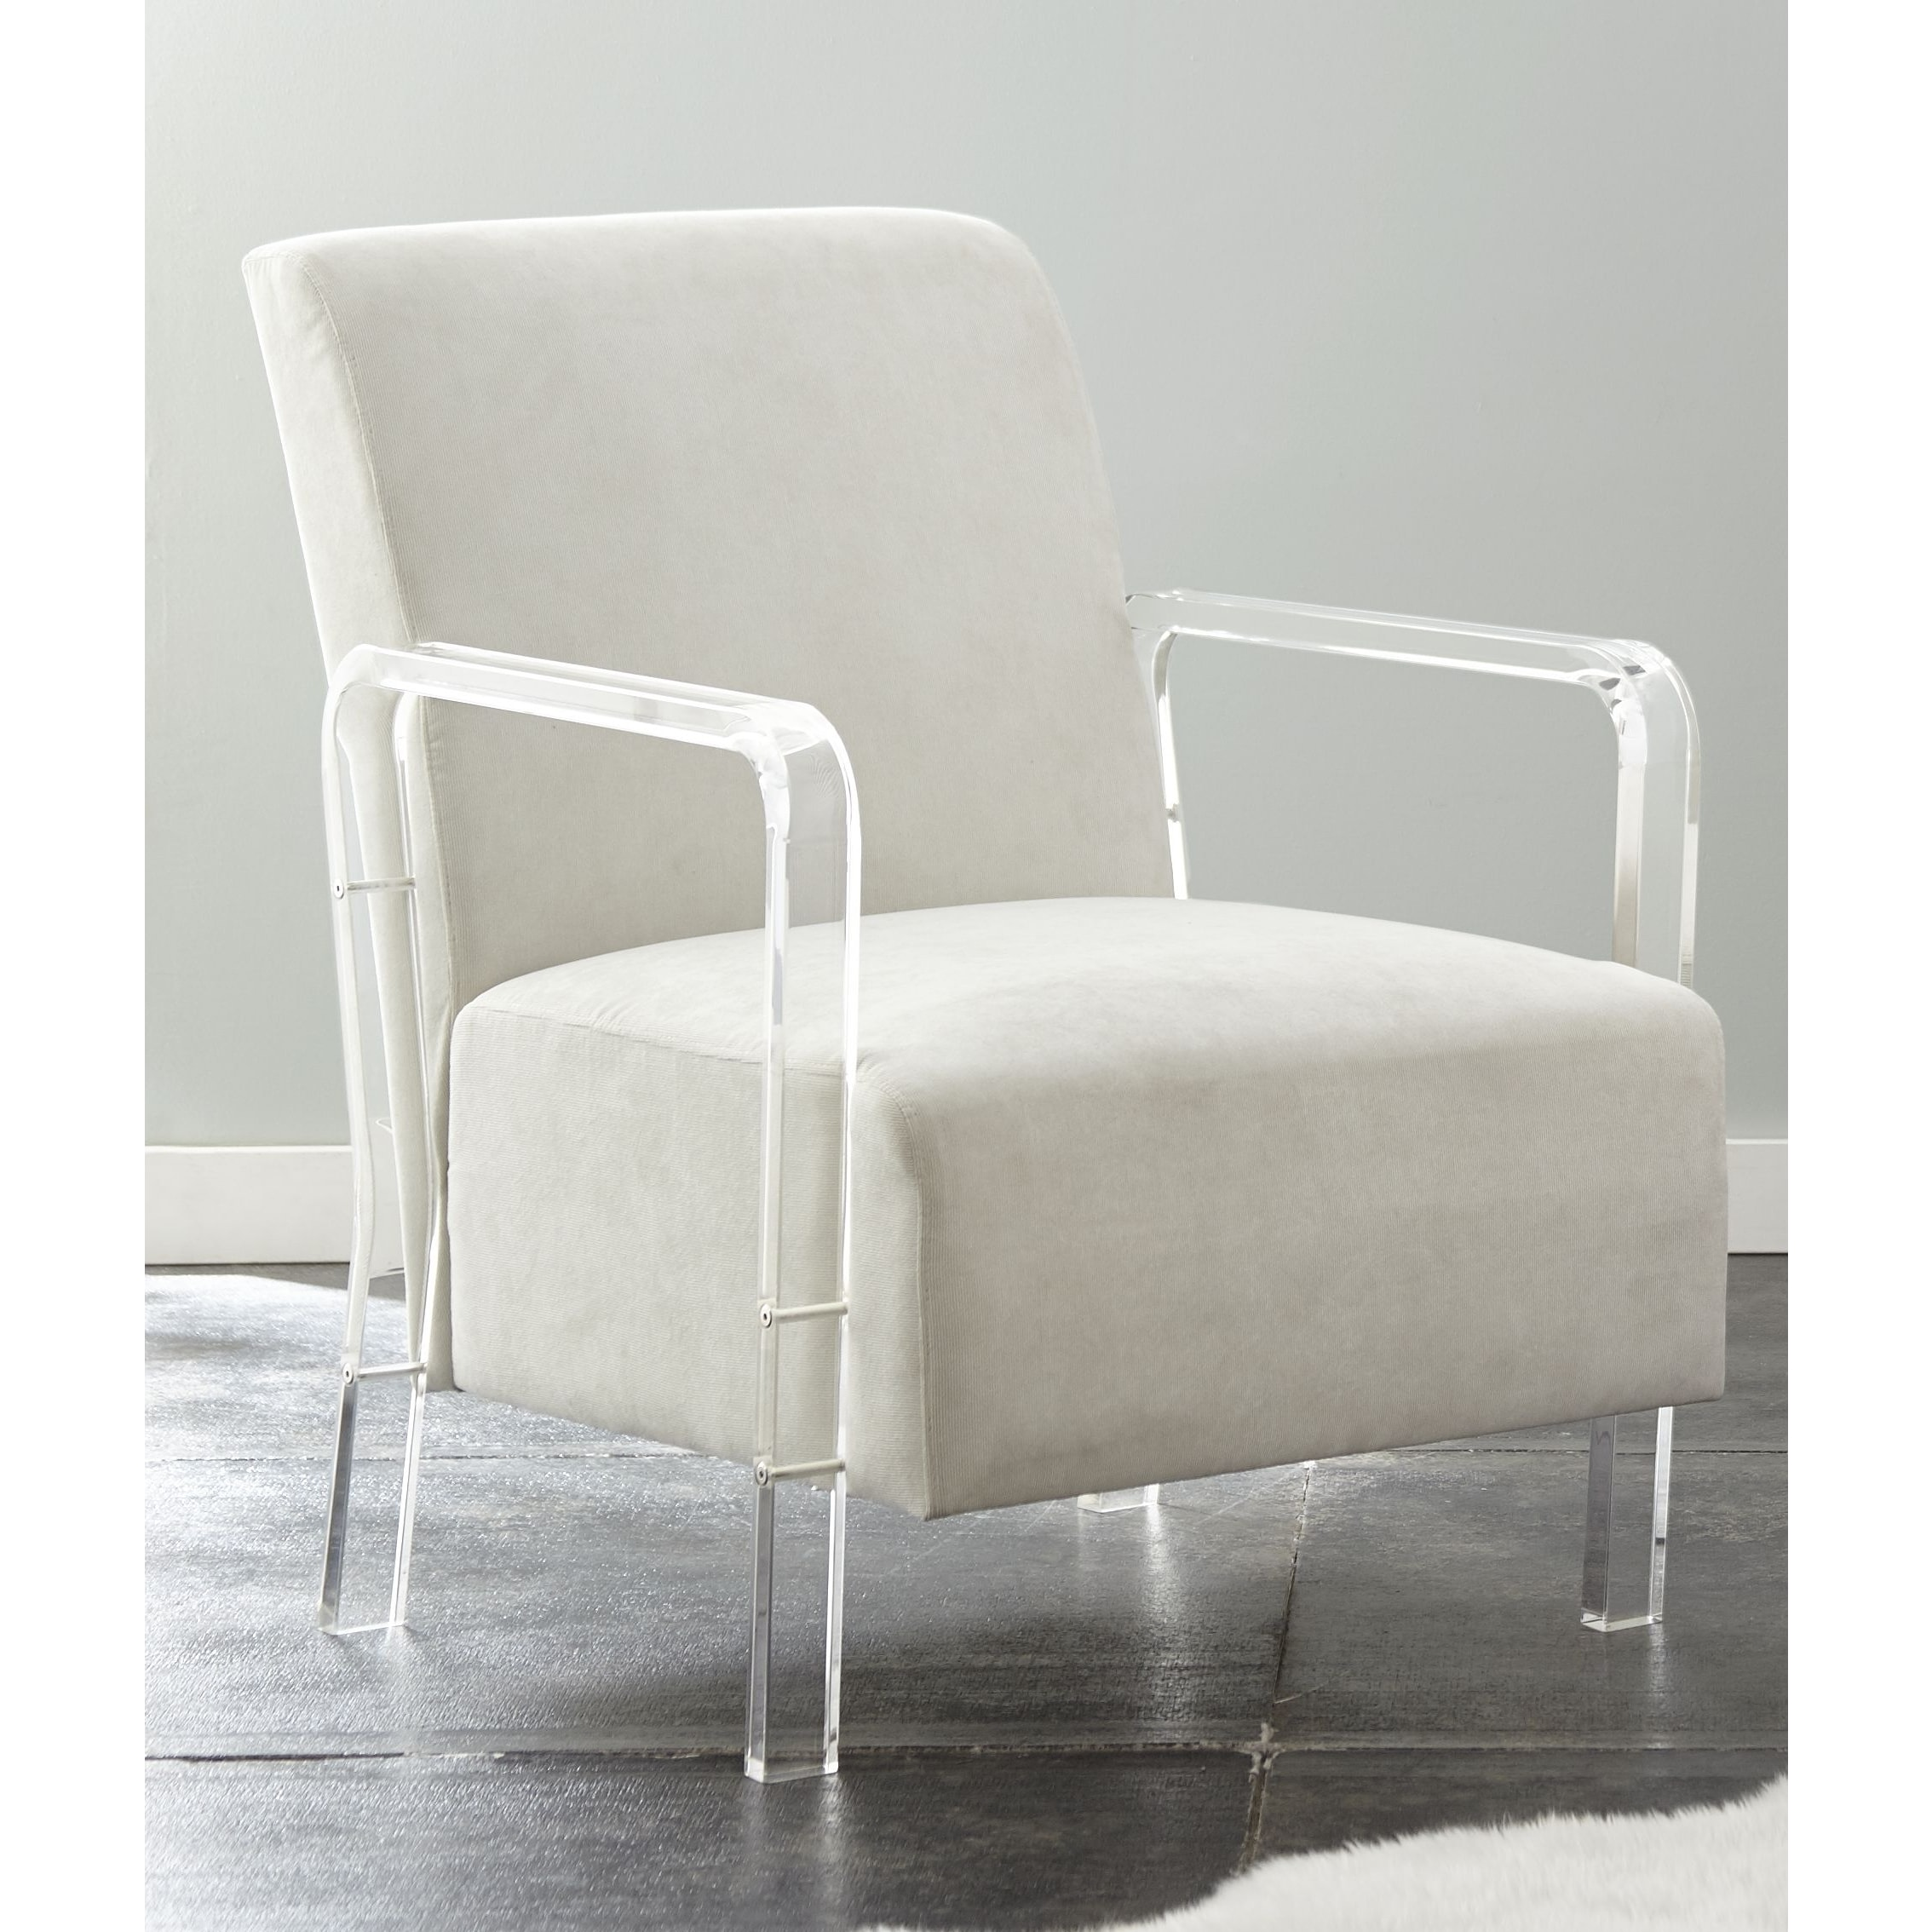 Charmant Shop Truitt Acrylic And Microfiber Arm Chair By Greyson Living   On Sale    Free Shipping Today   Overstock.com   17116804